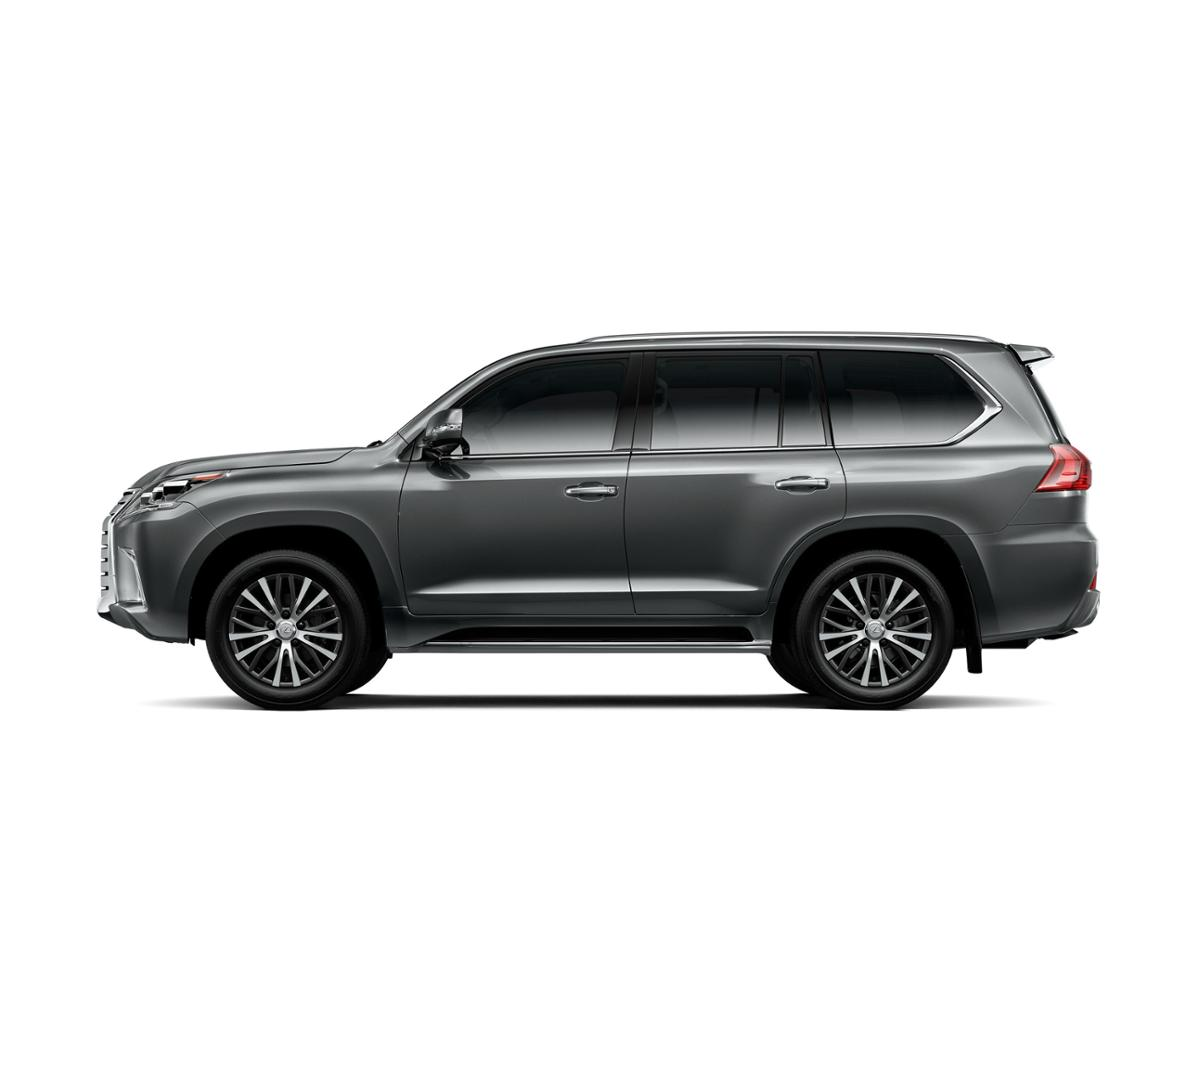 See This 2018 Lexus Lx 570 On Long Island In St James